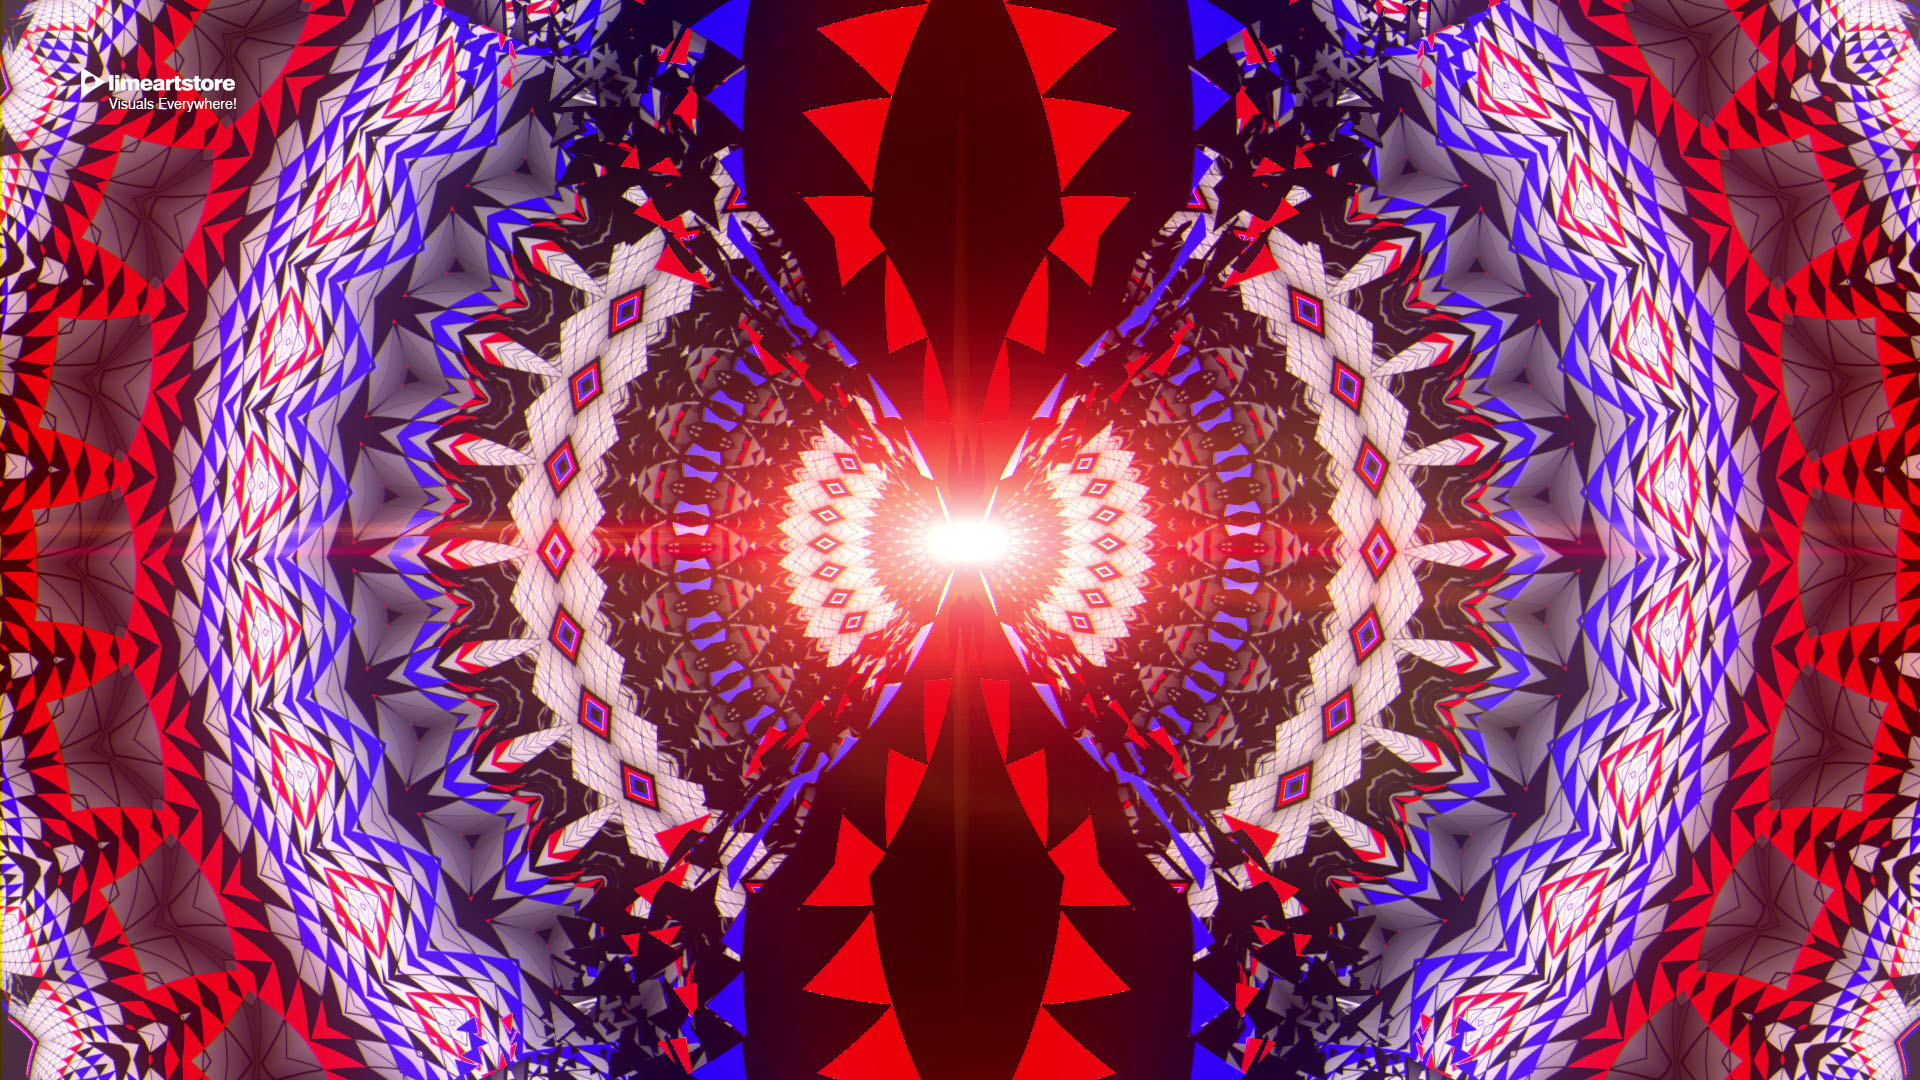 edm visuals vj video EDM